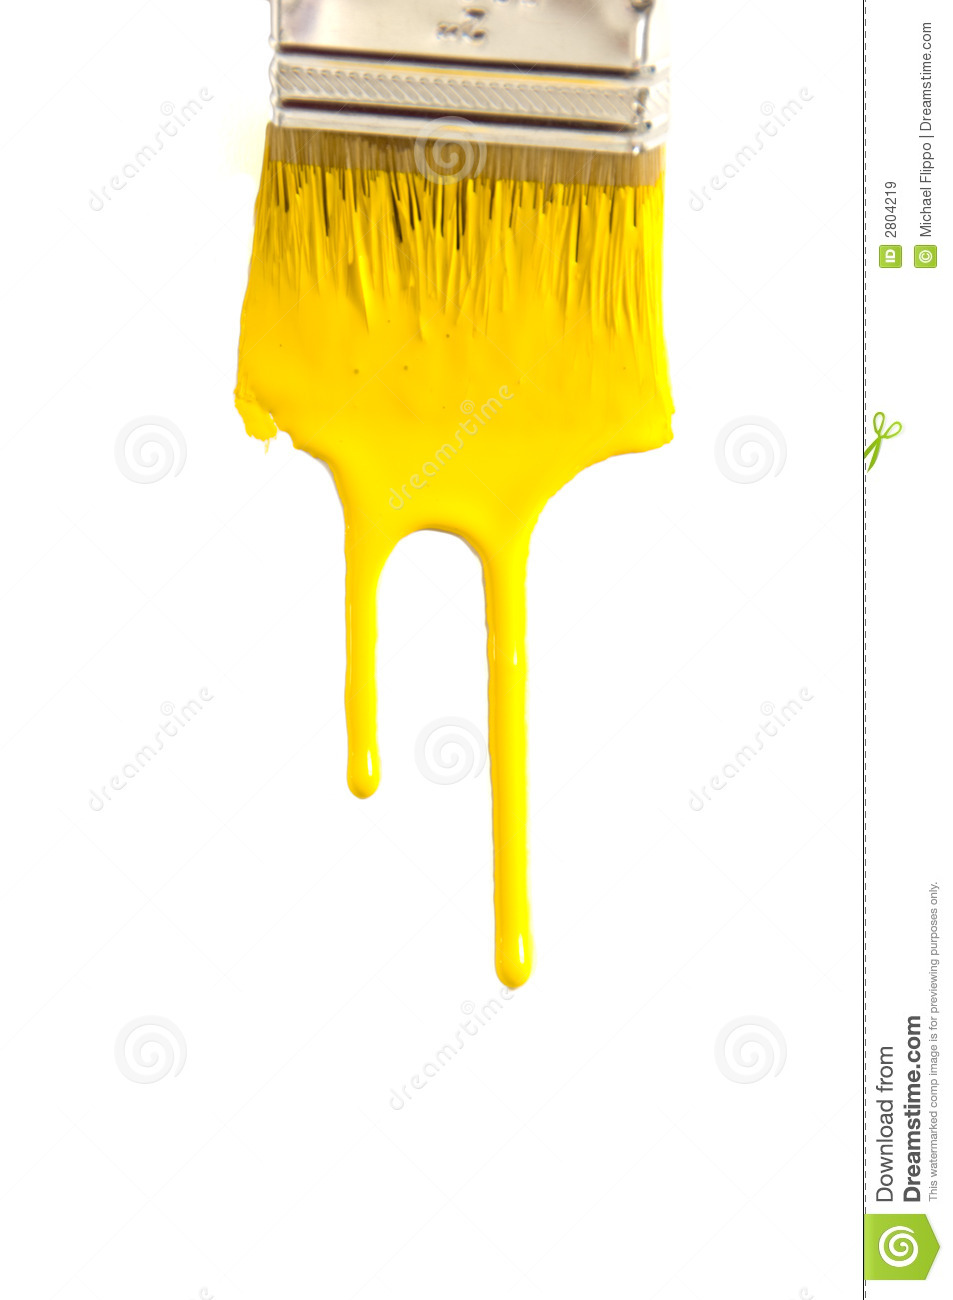 Dripping Paint stock image. Image of decorating, runny